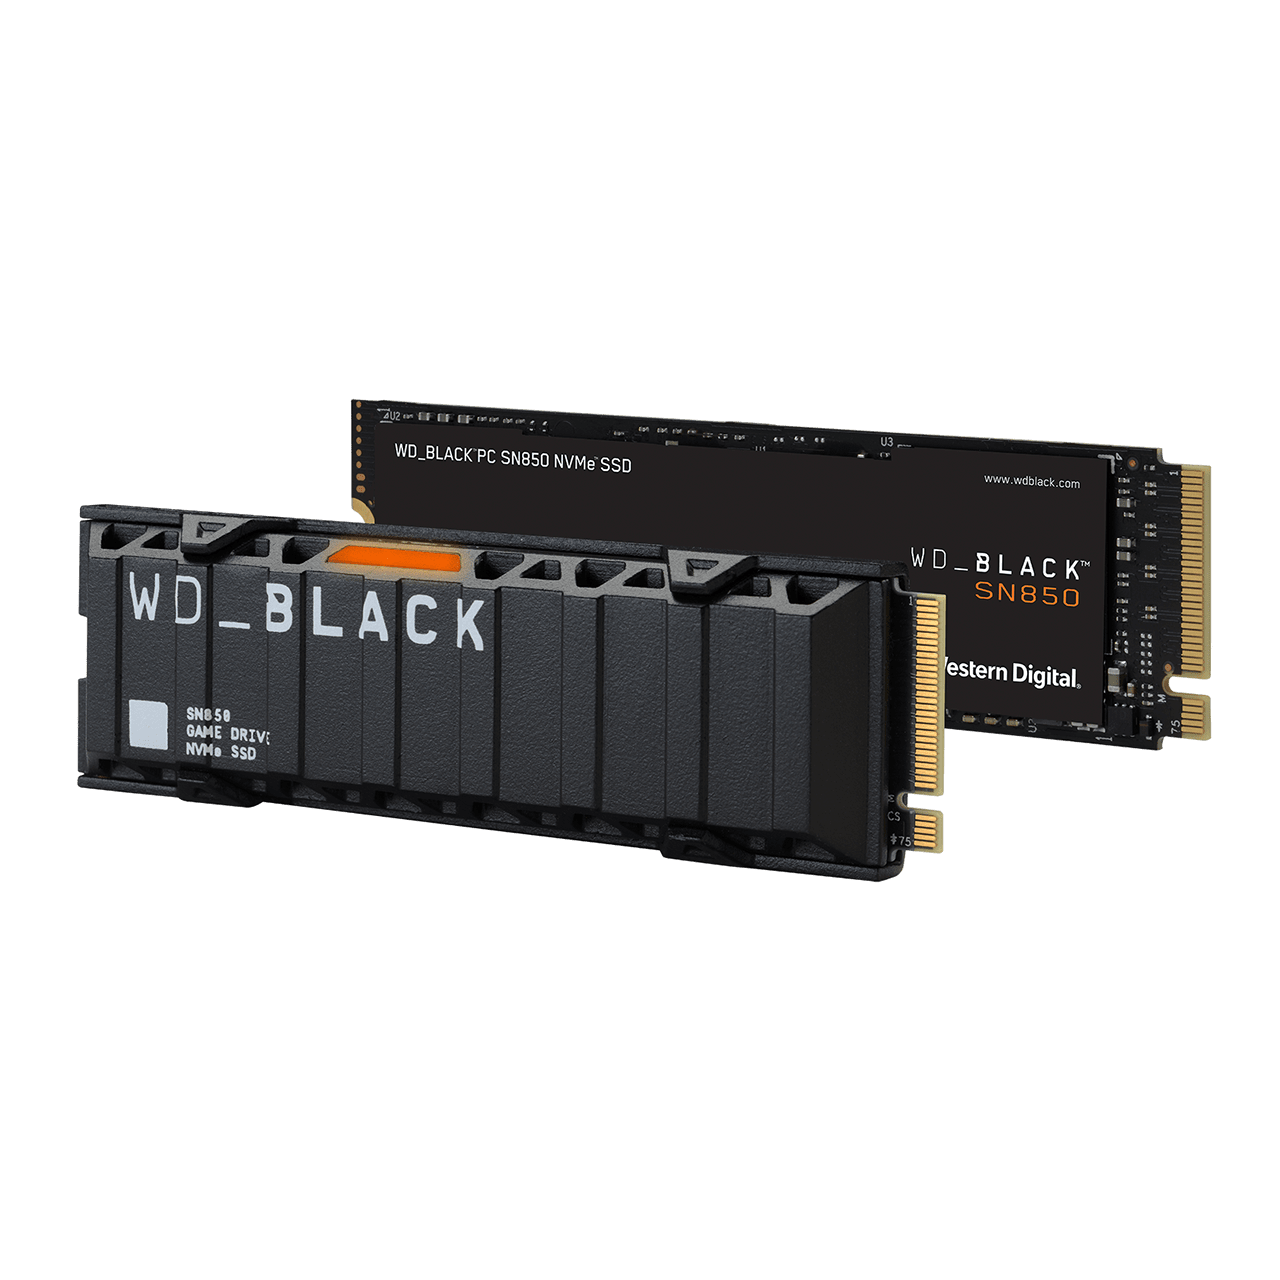 WD Black SN850 NVMe SSD Family